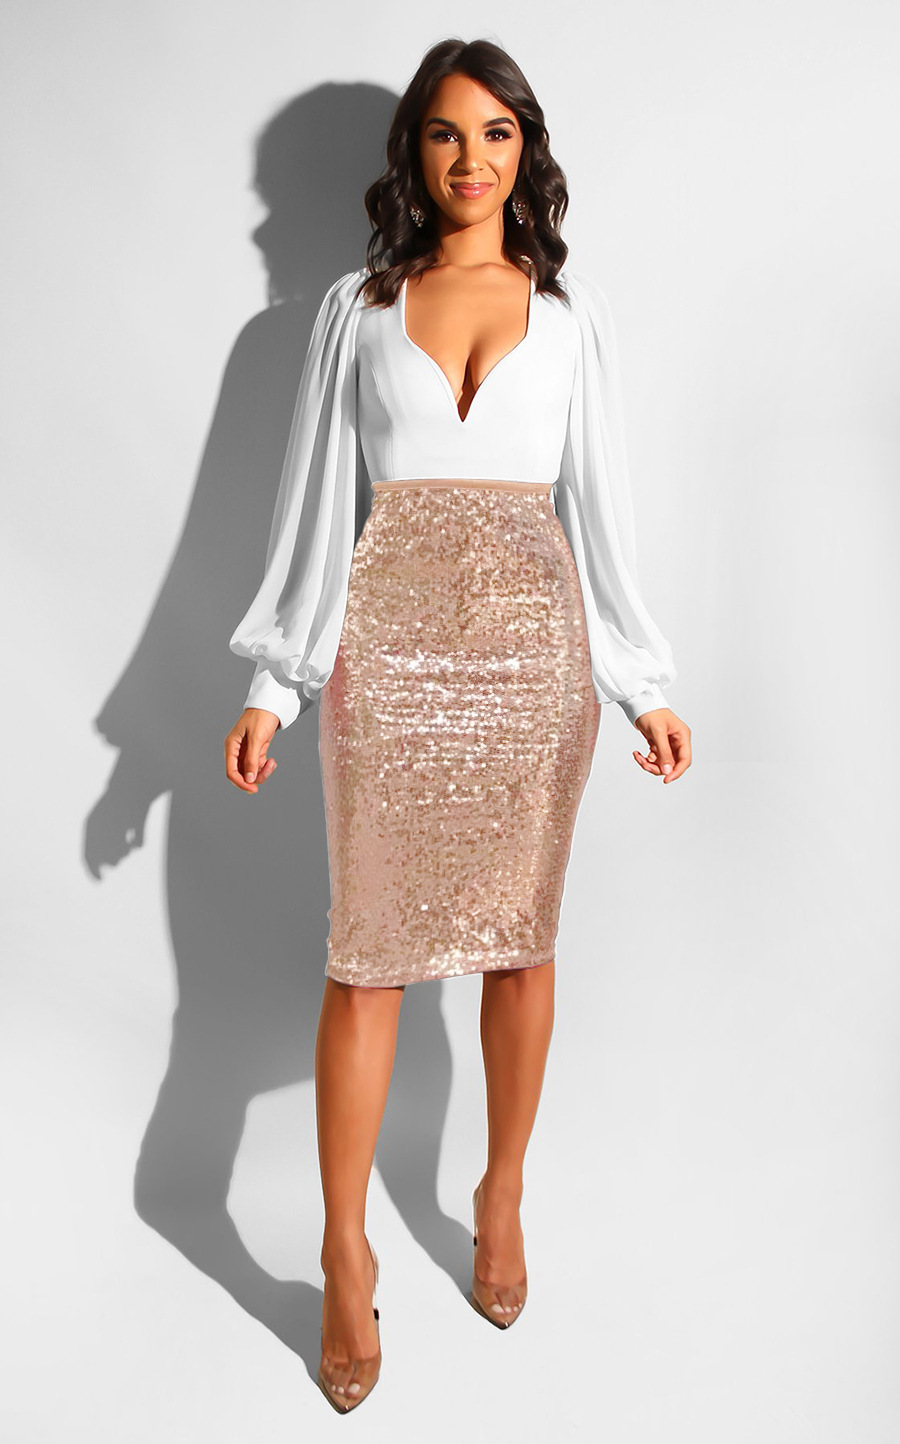 Women Sequined Midi Skirt High Waist Slim Bodycon Office Club Party Pencil Skirt apricot